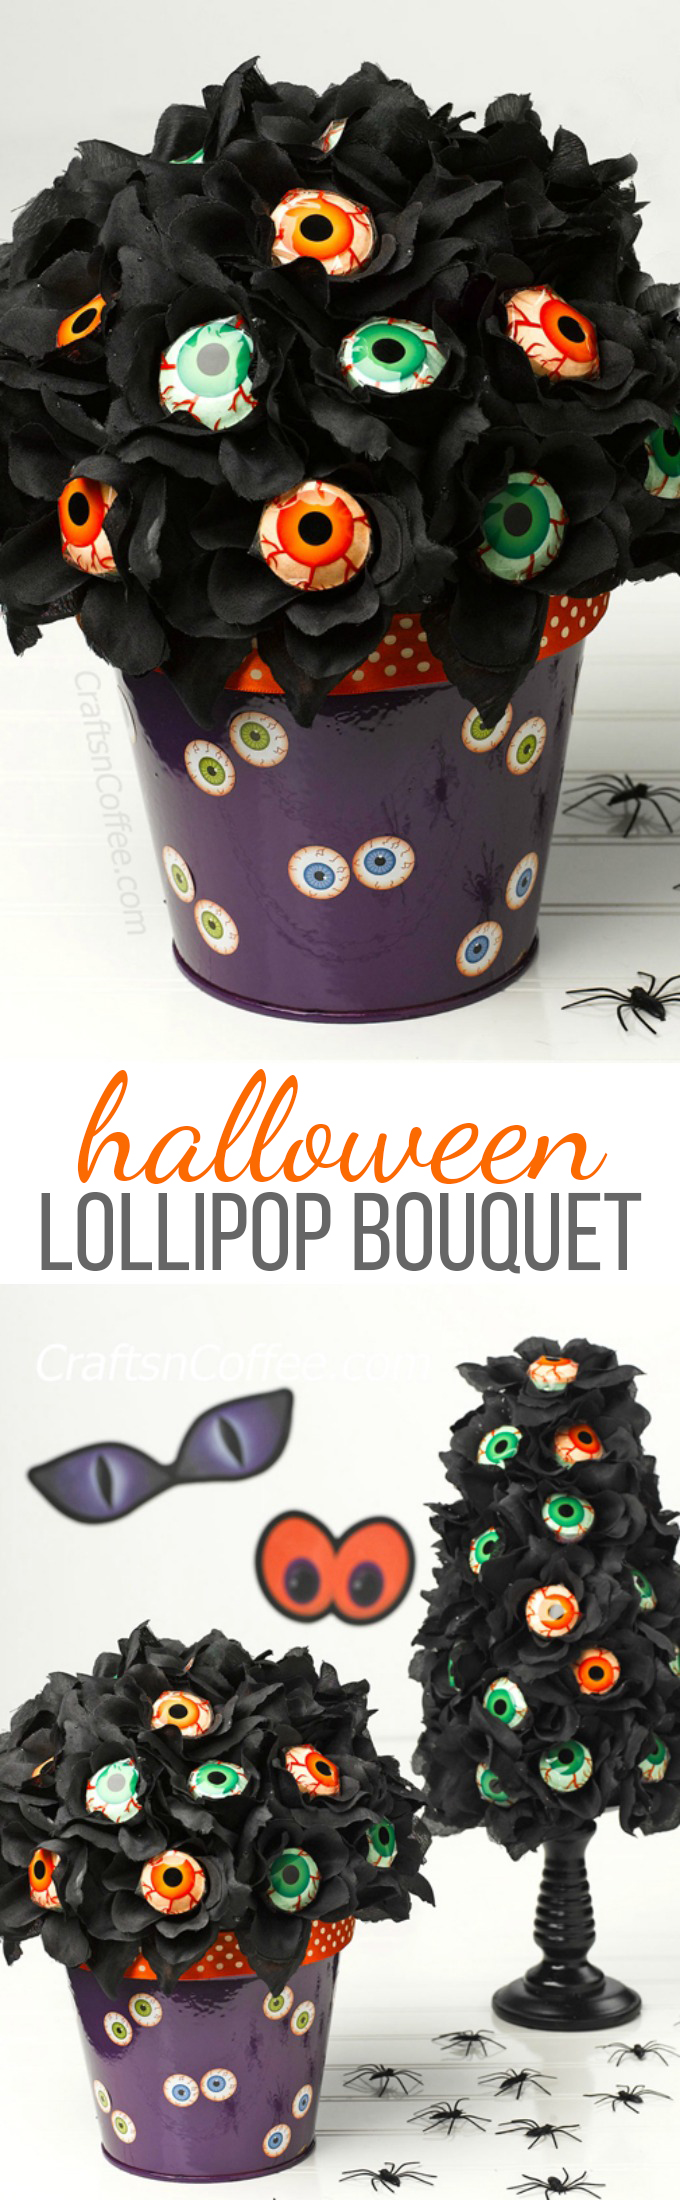 Halloween Lollipop Bouquet